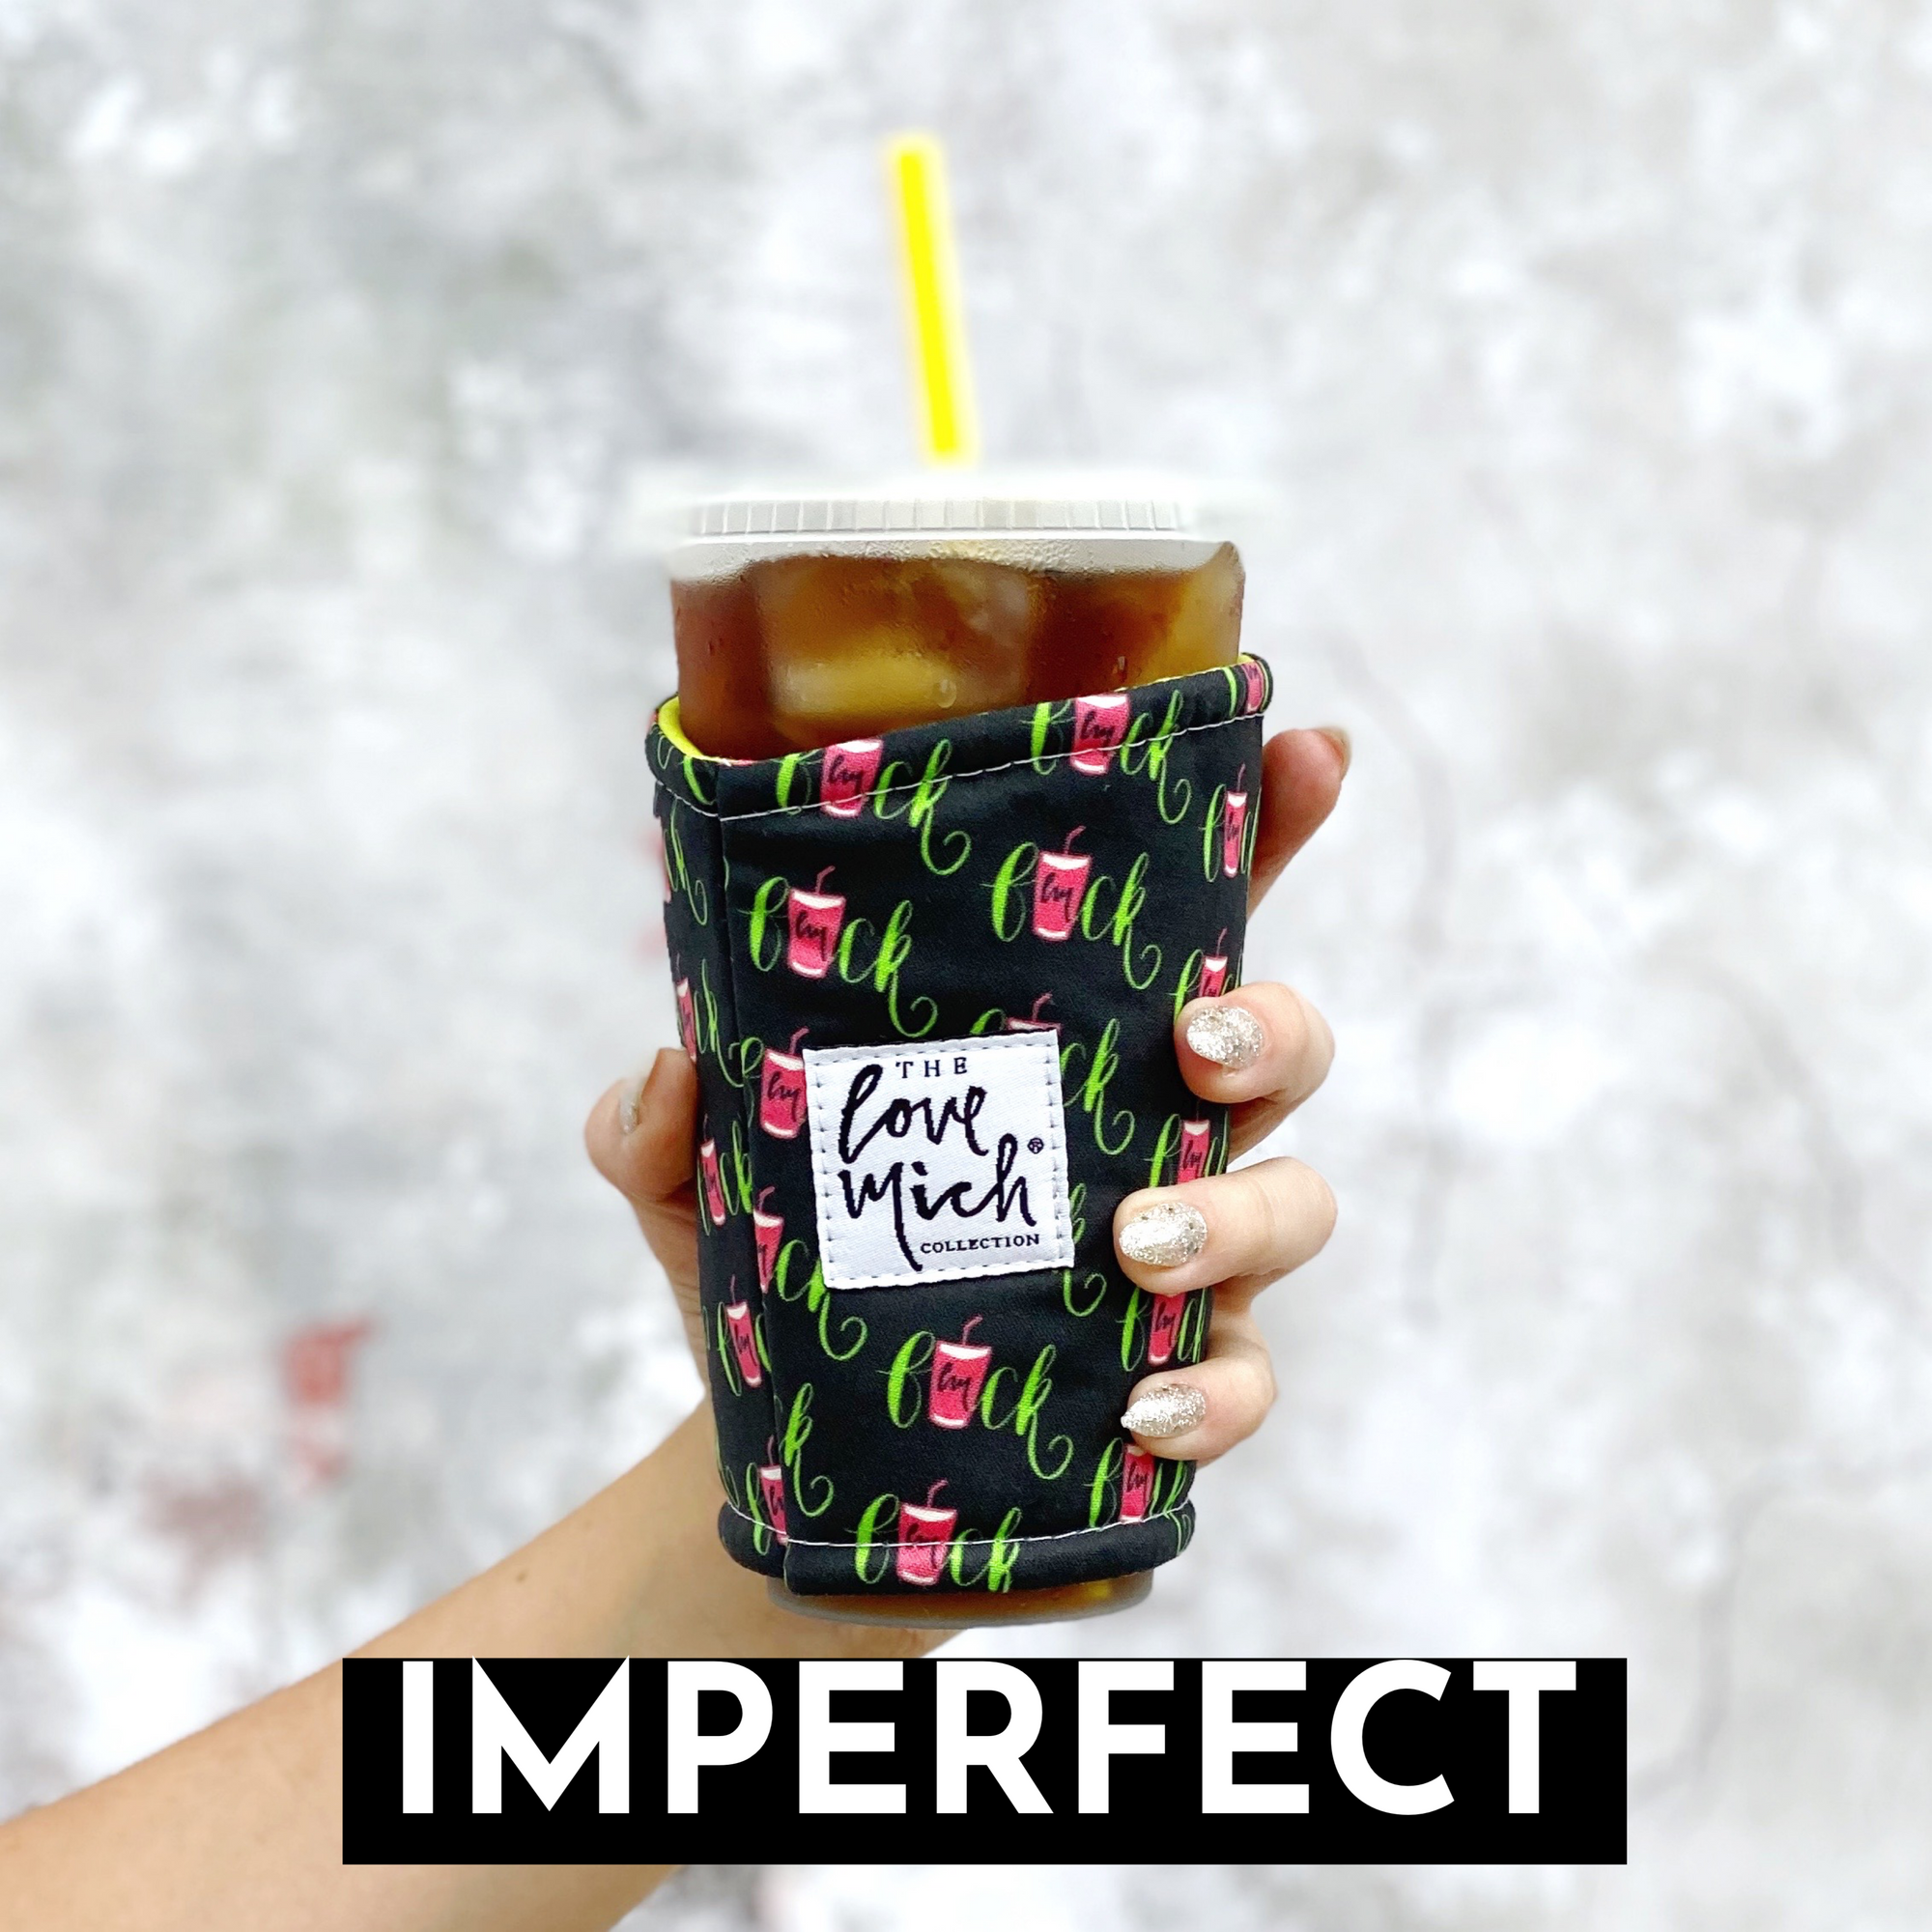 IMPERFECT - F@CK - Lime  - Coffee Cozy